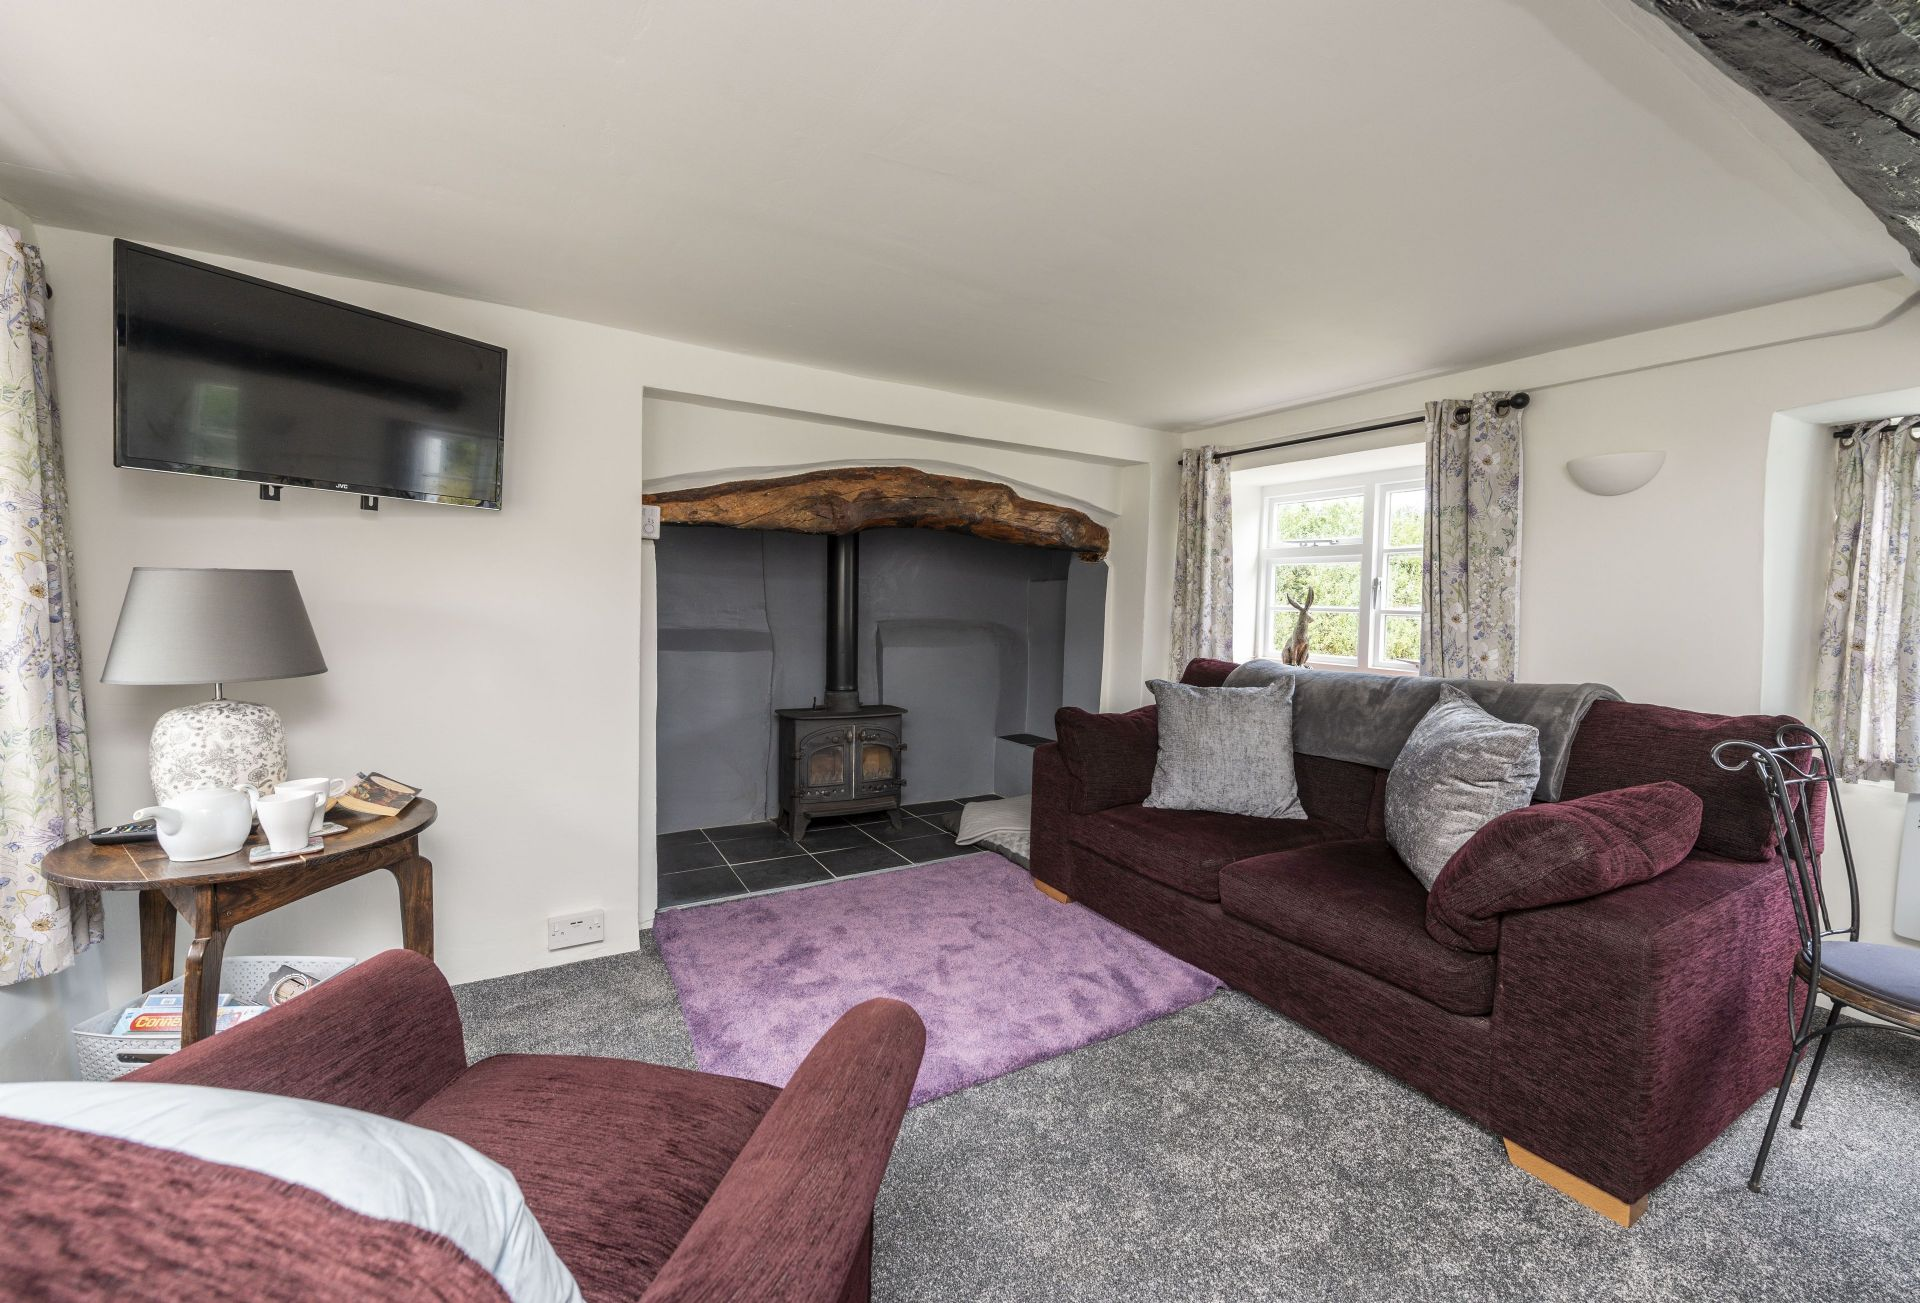 Primrose Cottage is located in Dorchester and surrounding villages